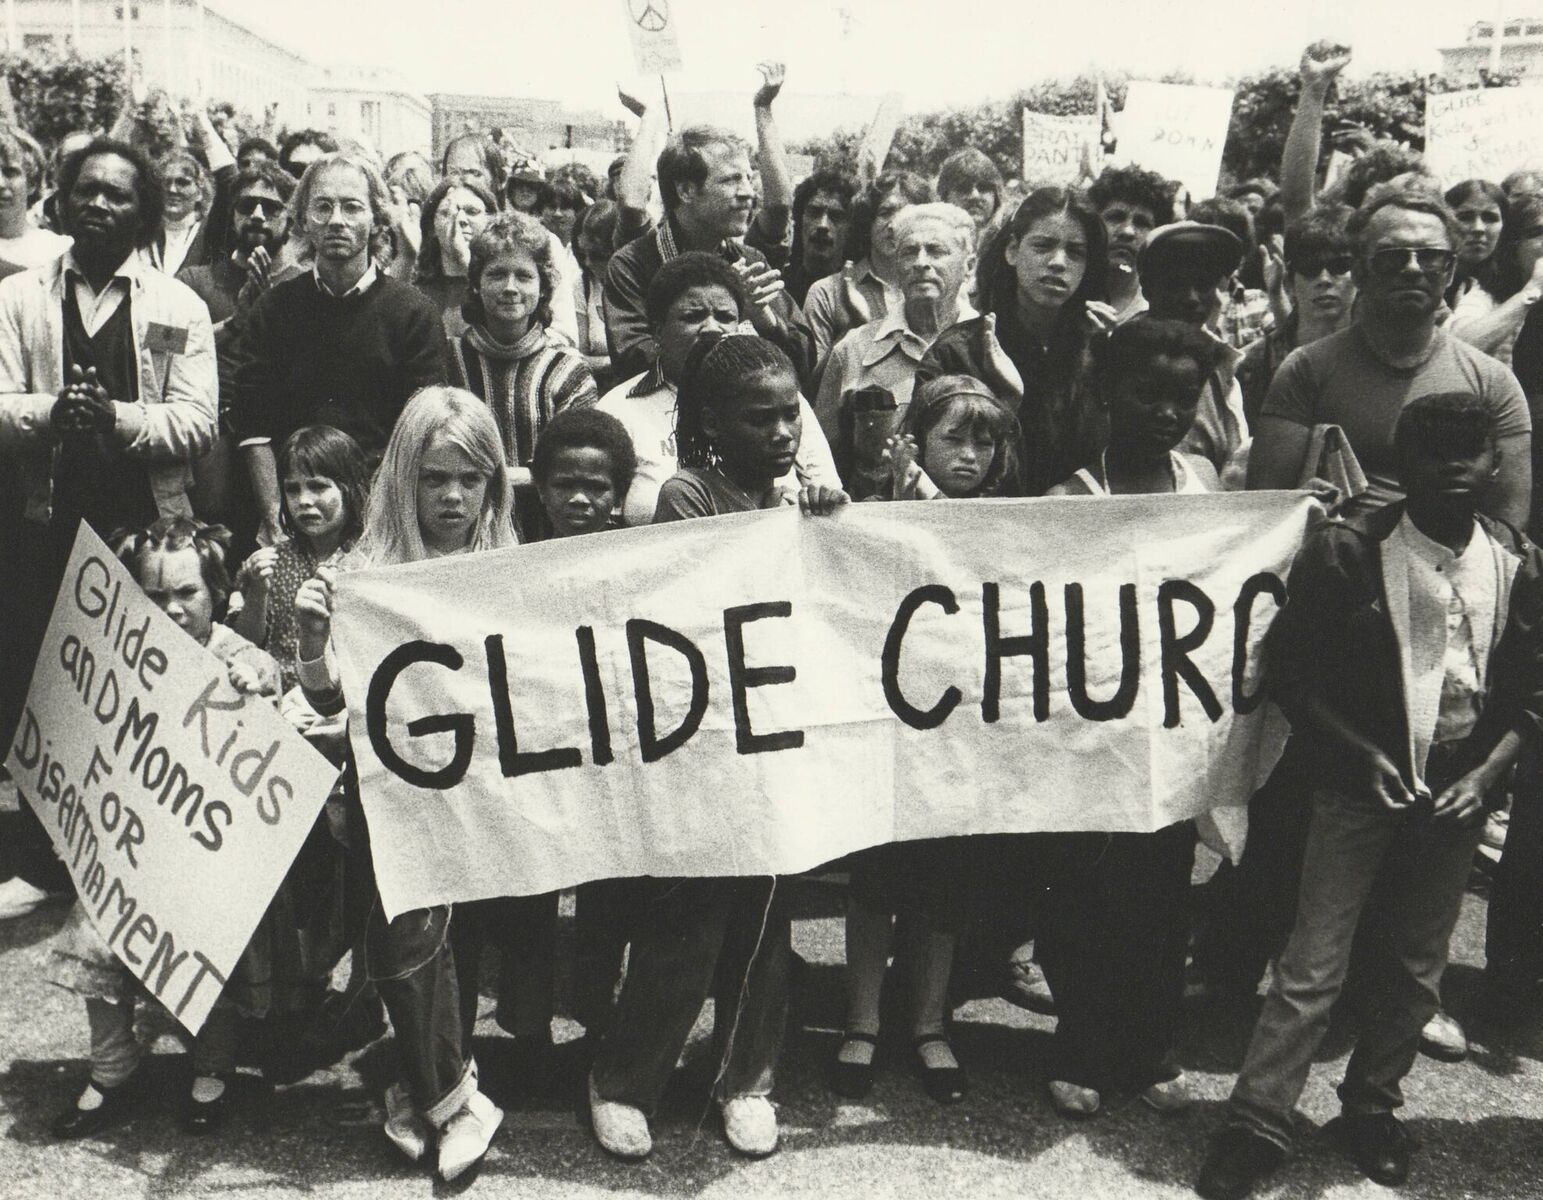 glide-church-banner-archive-image